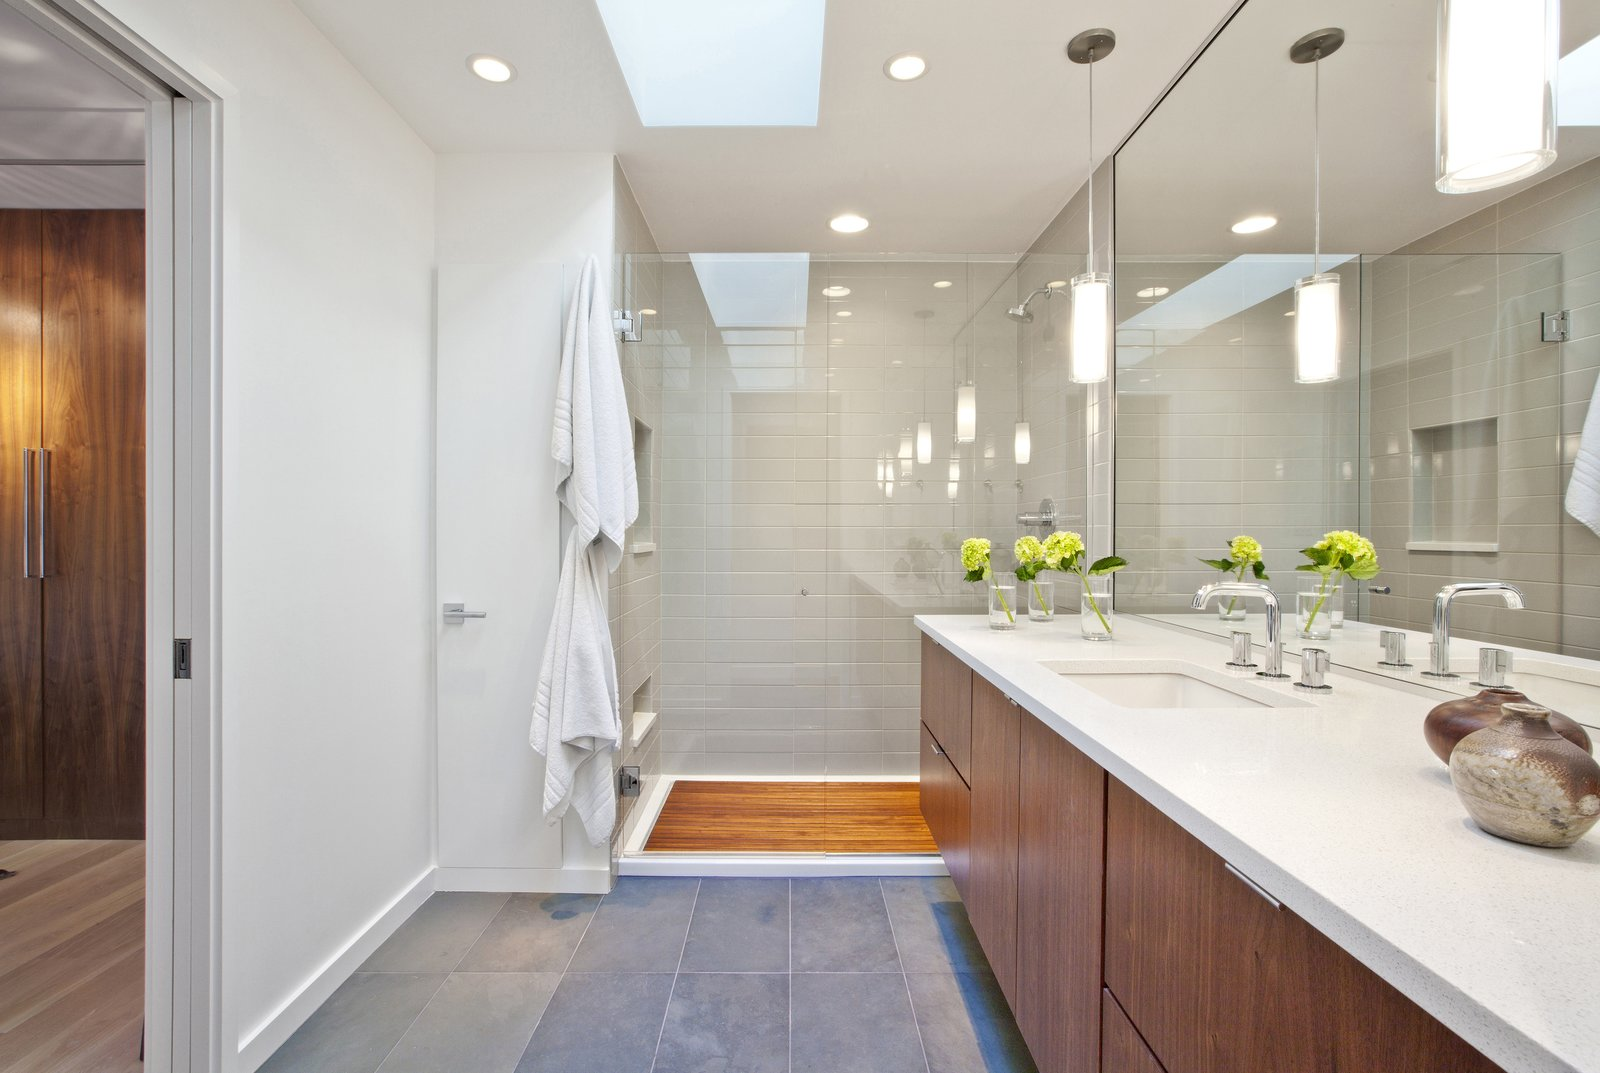 Bath Room, Engineered Quartz Counter, Open Shower, Undermount Sink, Enclosed Shower, Slate Floor, Recessed Lighting, Pendant Lighting, and Ceramic Tile Wall  MCM 220 by HAUS | Architecture For Modern Lifestyles